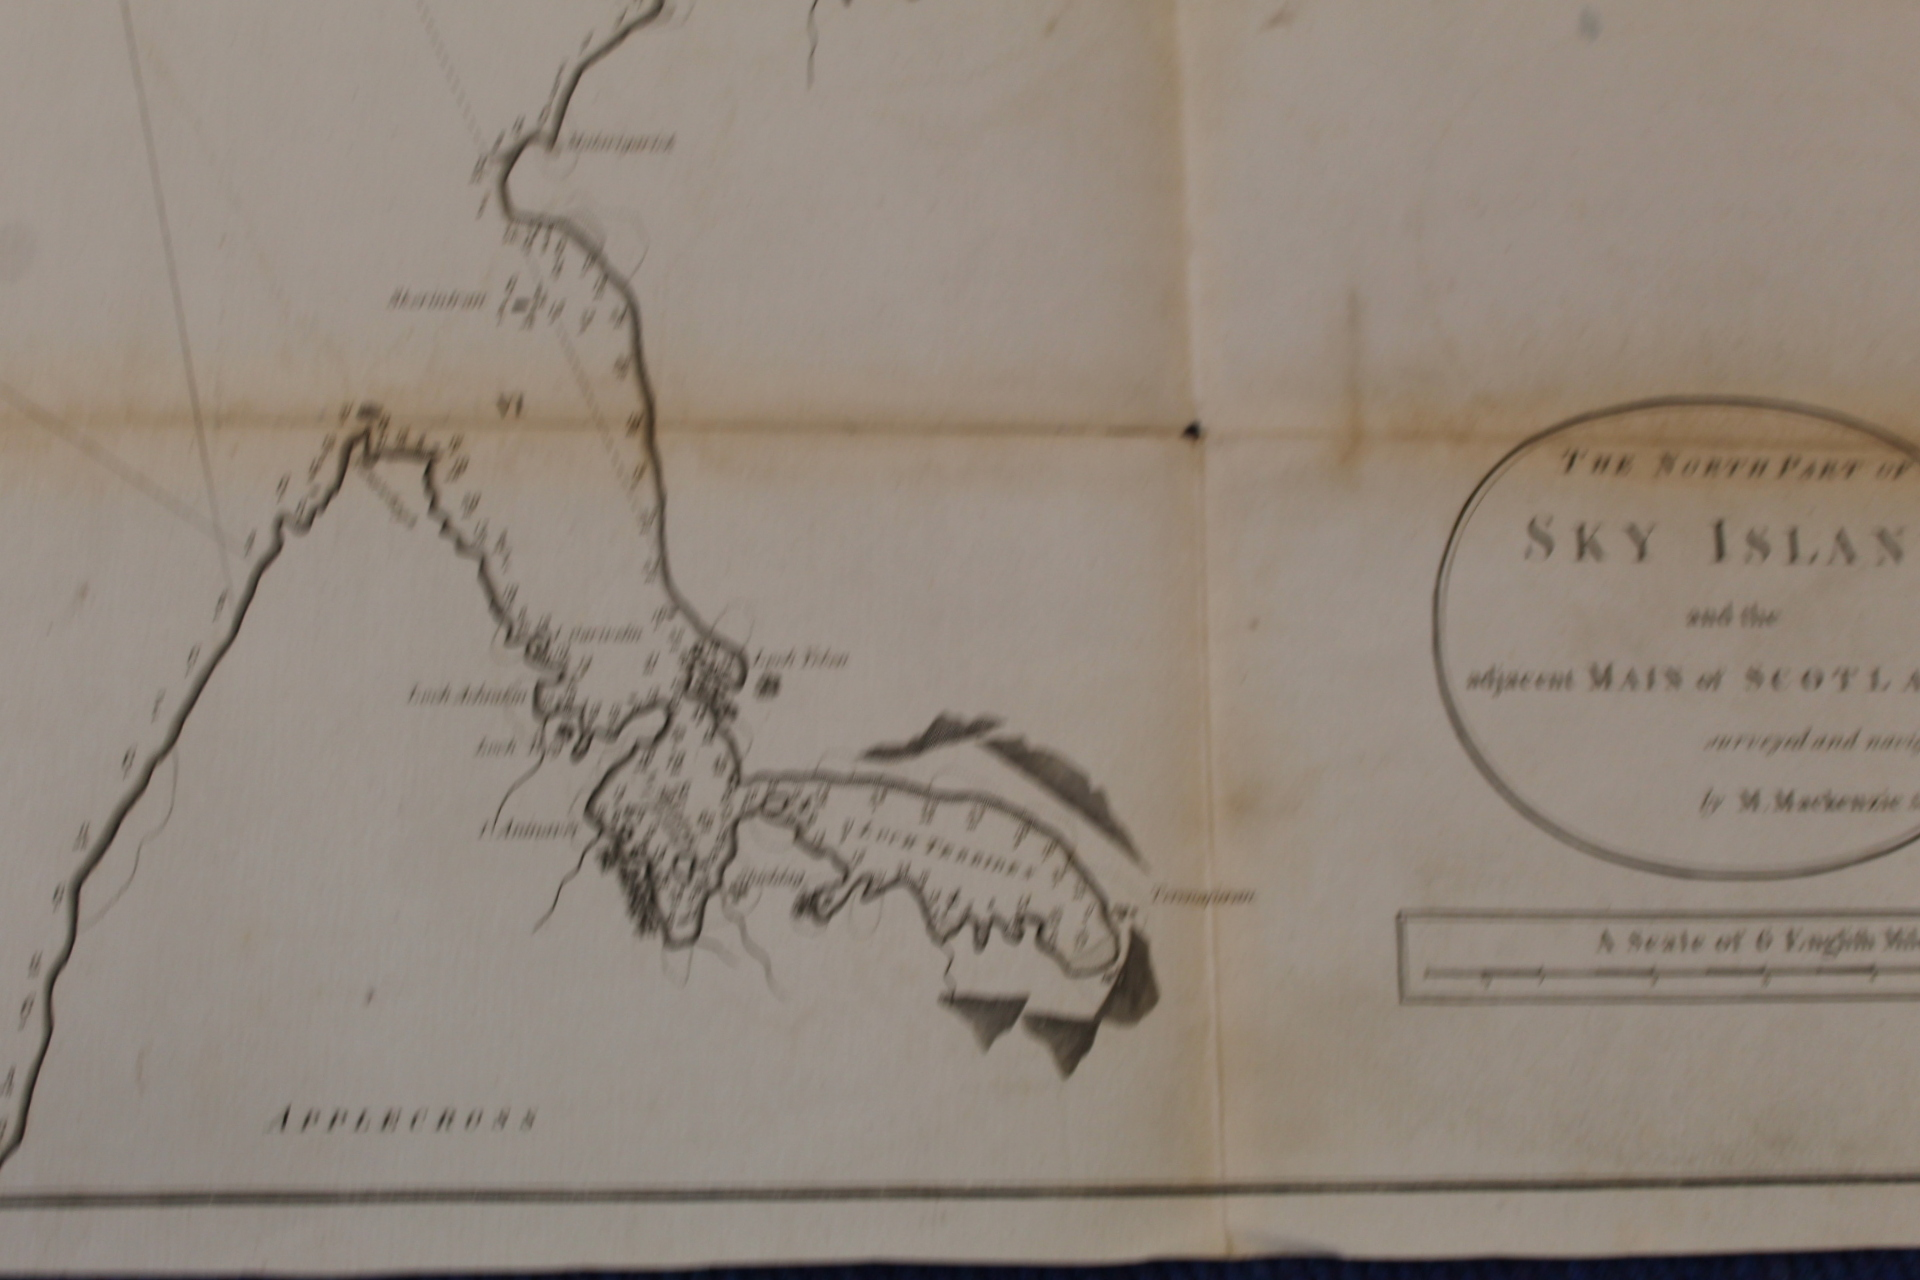 MACKENZIE MURDOCH (SNR.).A General Chart of the West Coast & Western Islands of Scotland from - Image 53 of 66